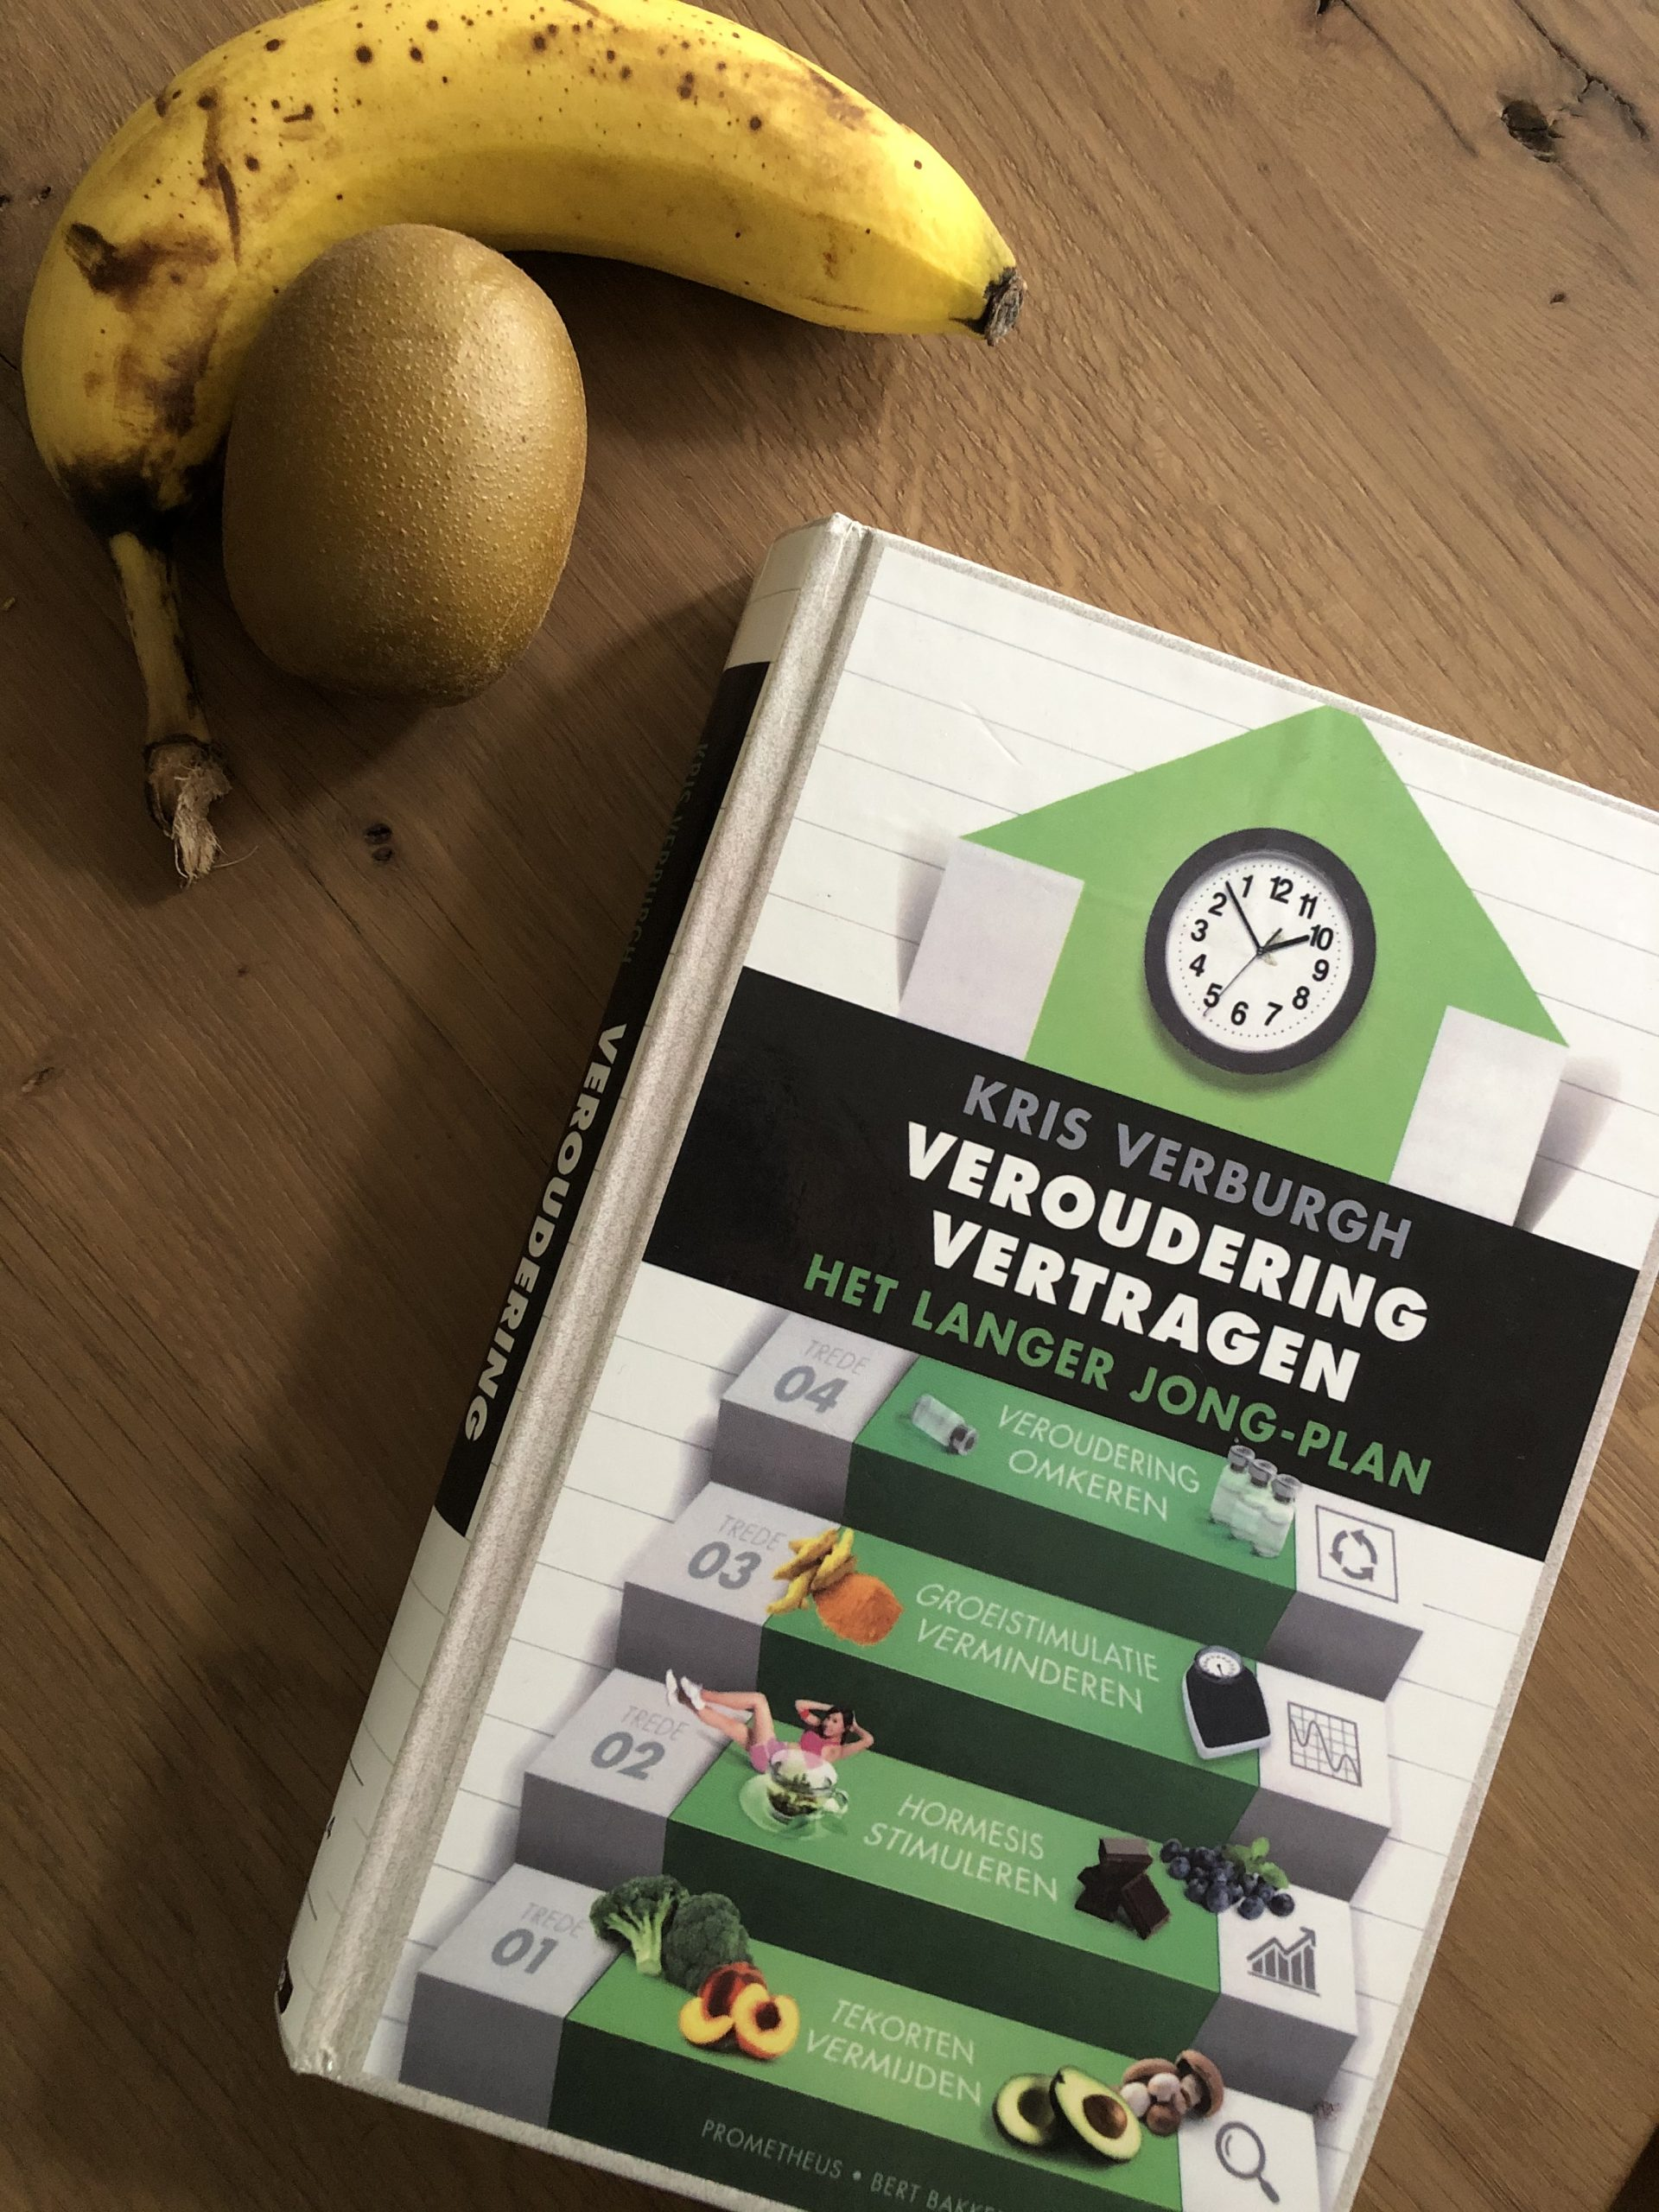 Book about longevity: Veroudering Vertragen (Dutch)